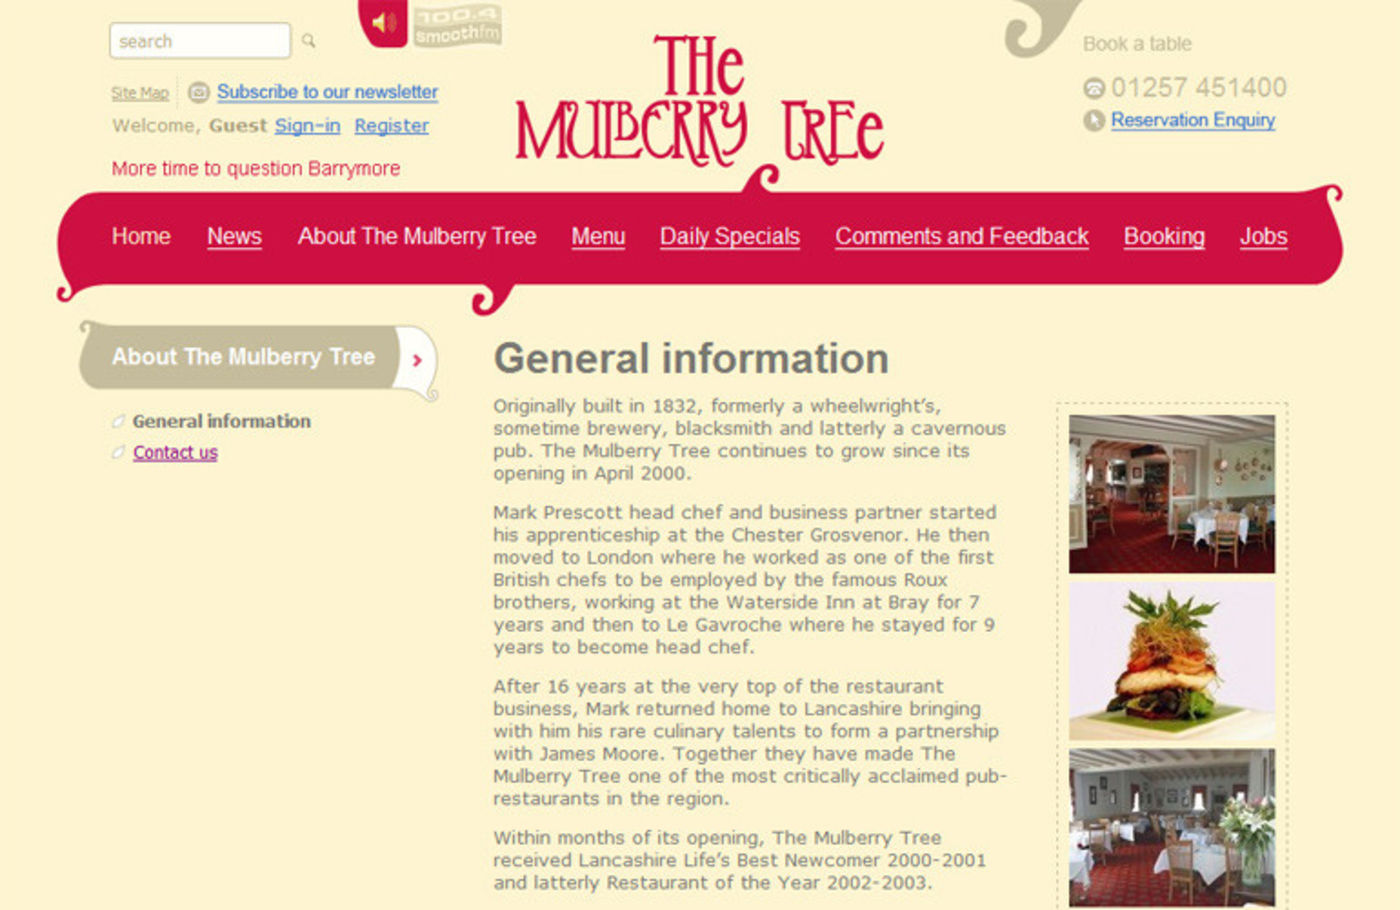 The Mulberry Tree General information